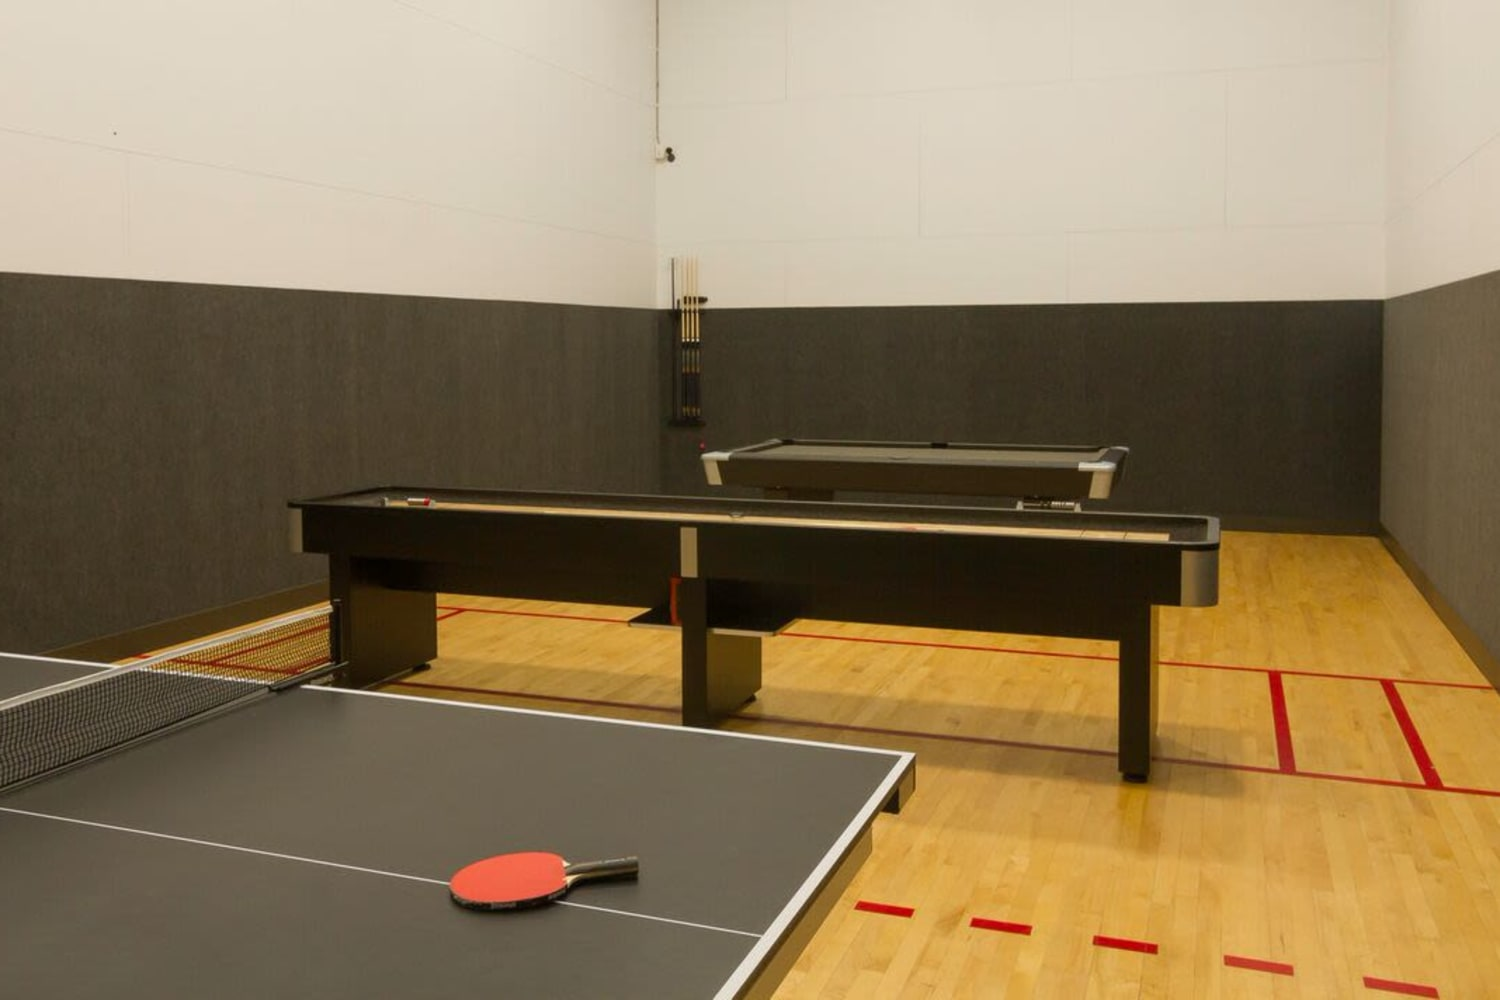 Table tennis at Irving Schoolhouse Apartments in Salt Lake City, Utah